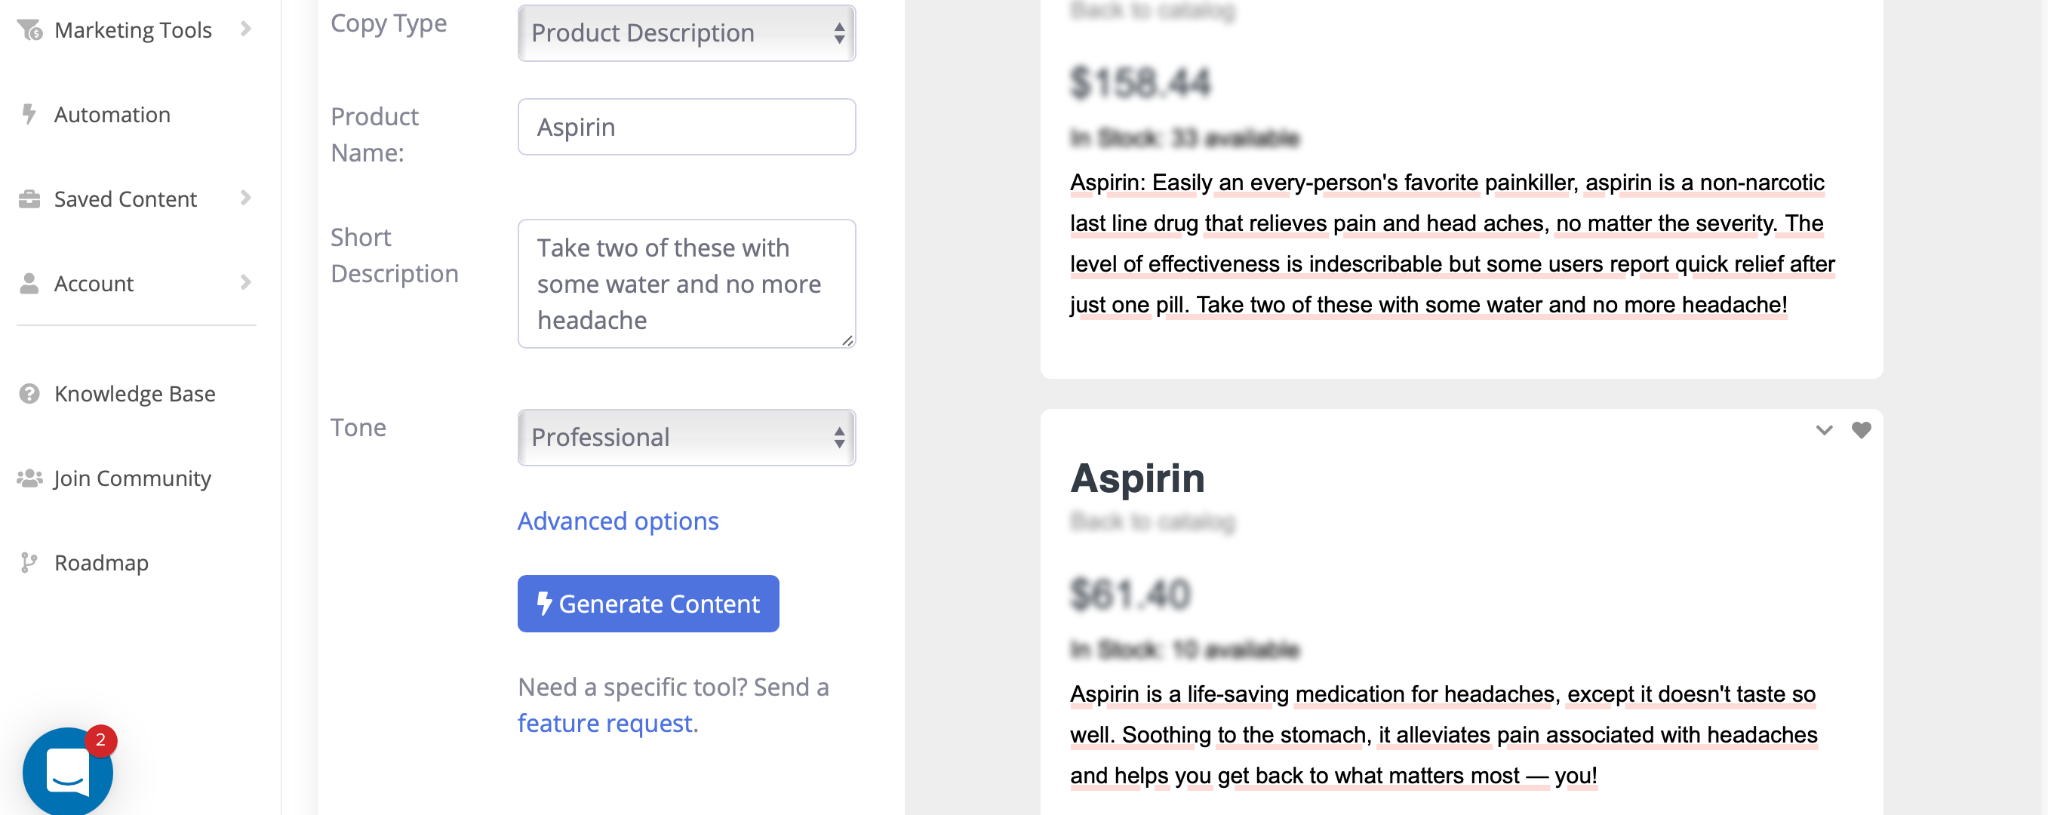 example from contentbot ai writing software for product descriptions